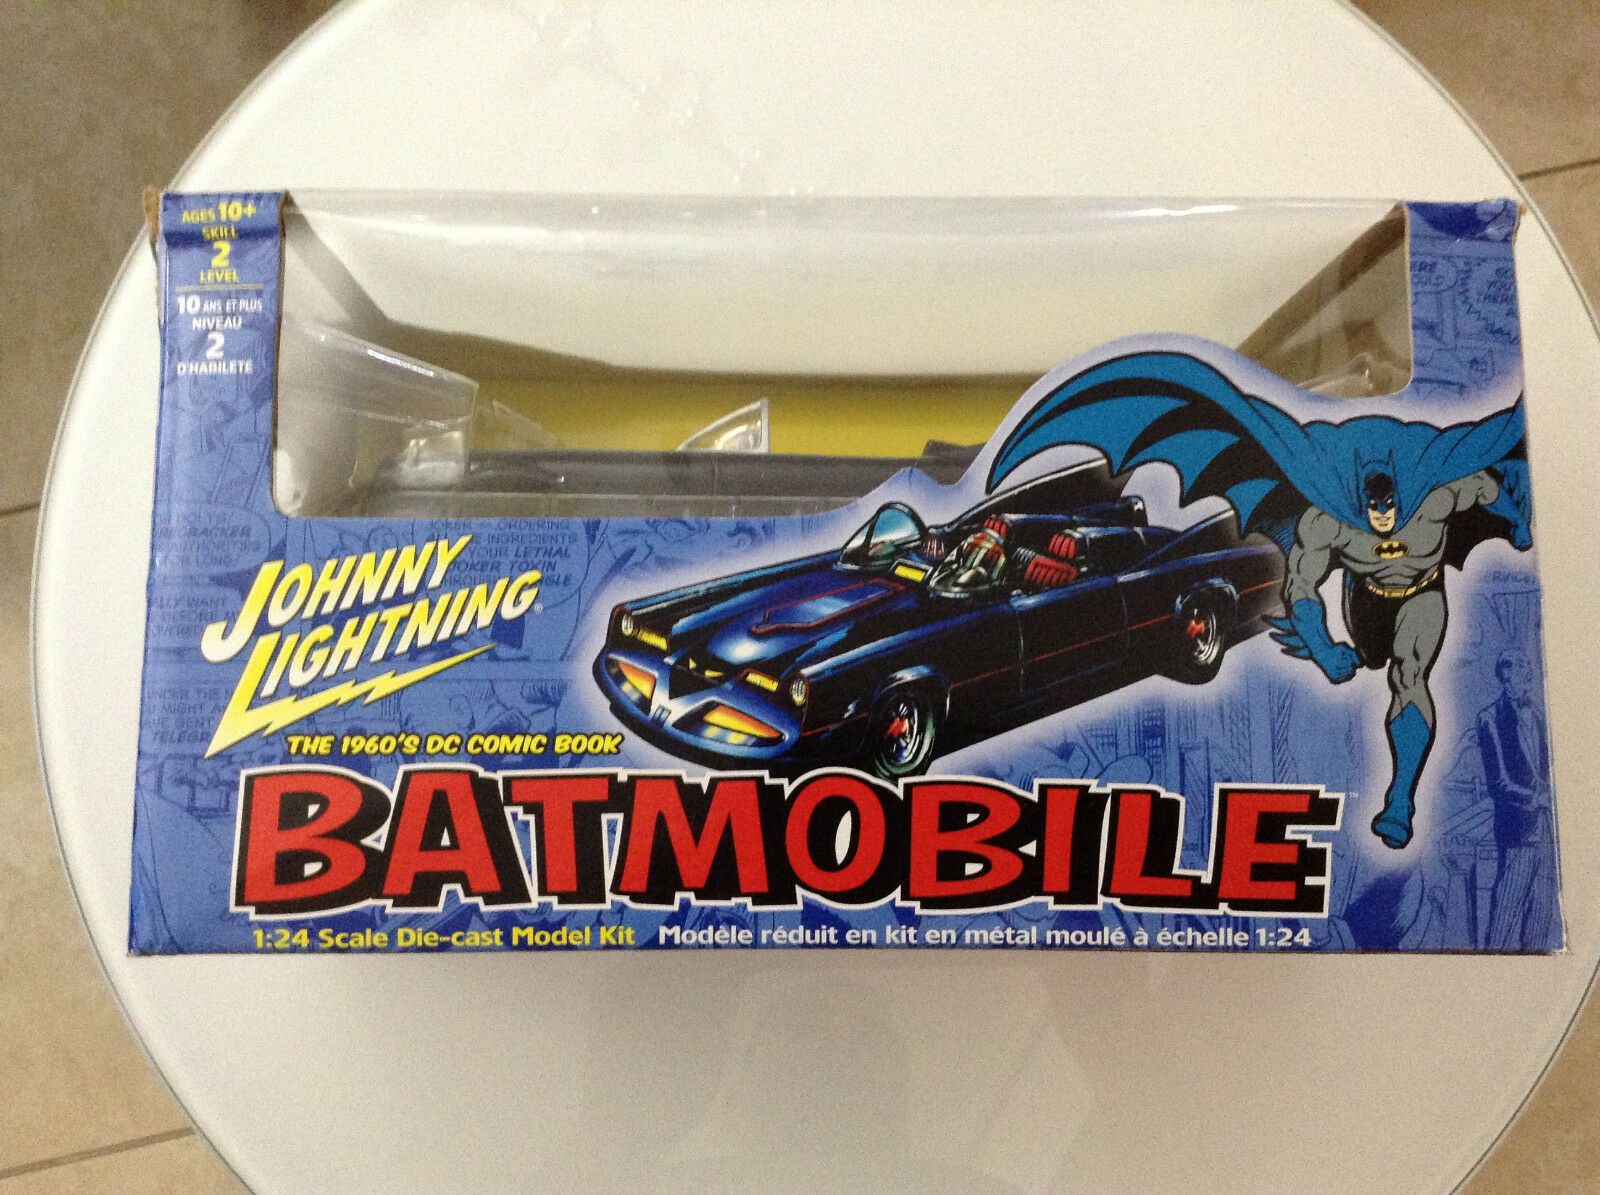 Batman in den 1960ern dc comic - batmobil 24 skala die-cast modell kit vehicle1